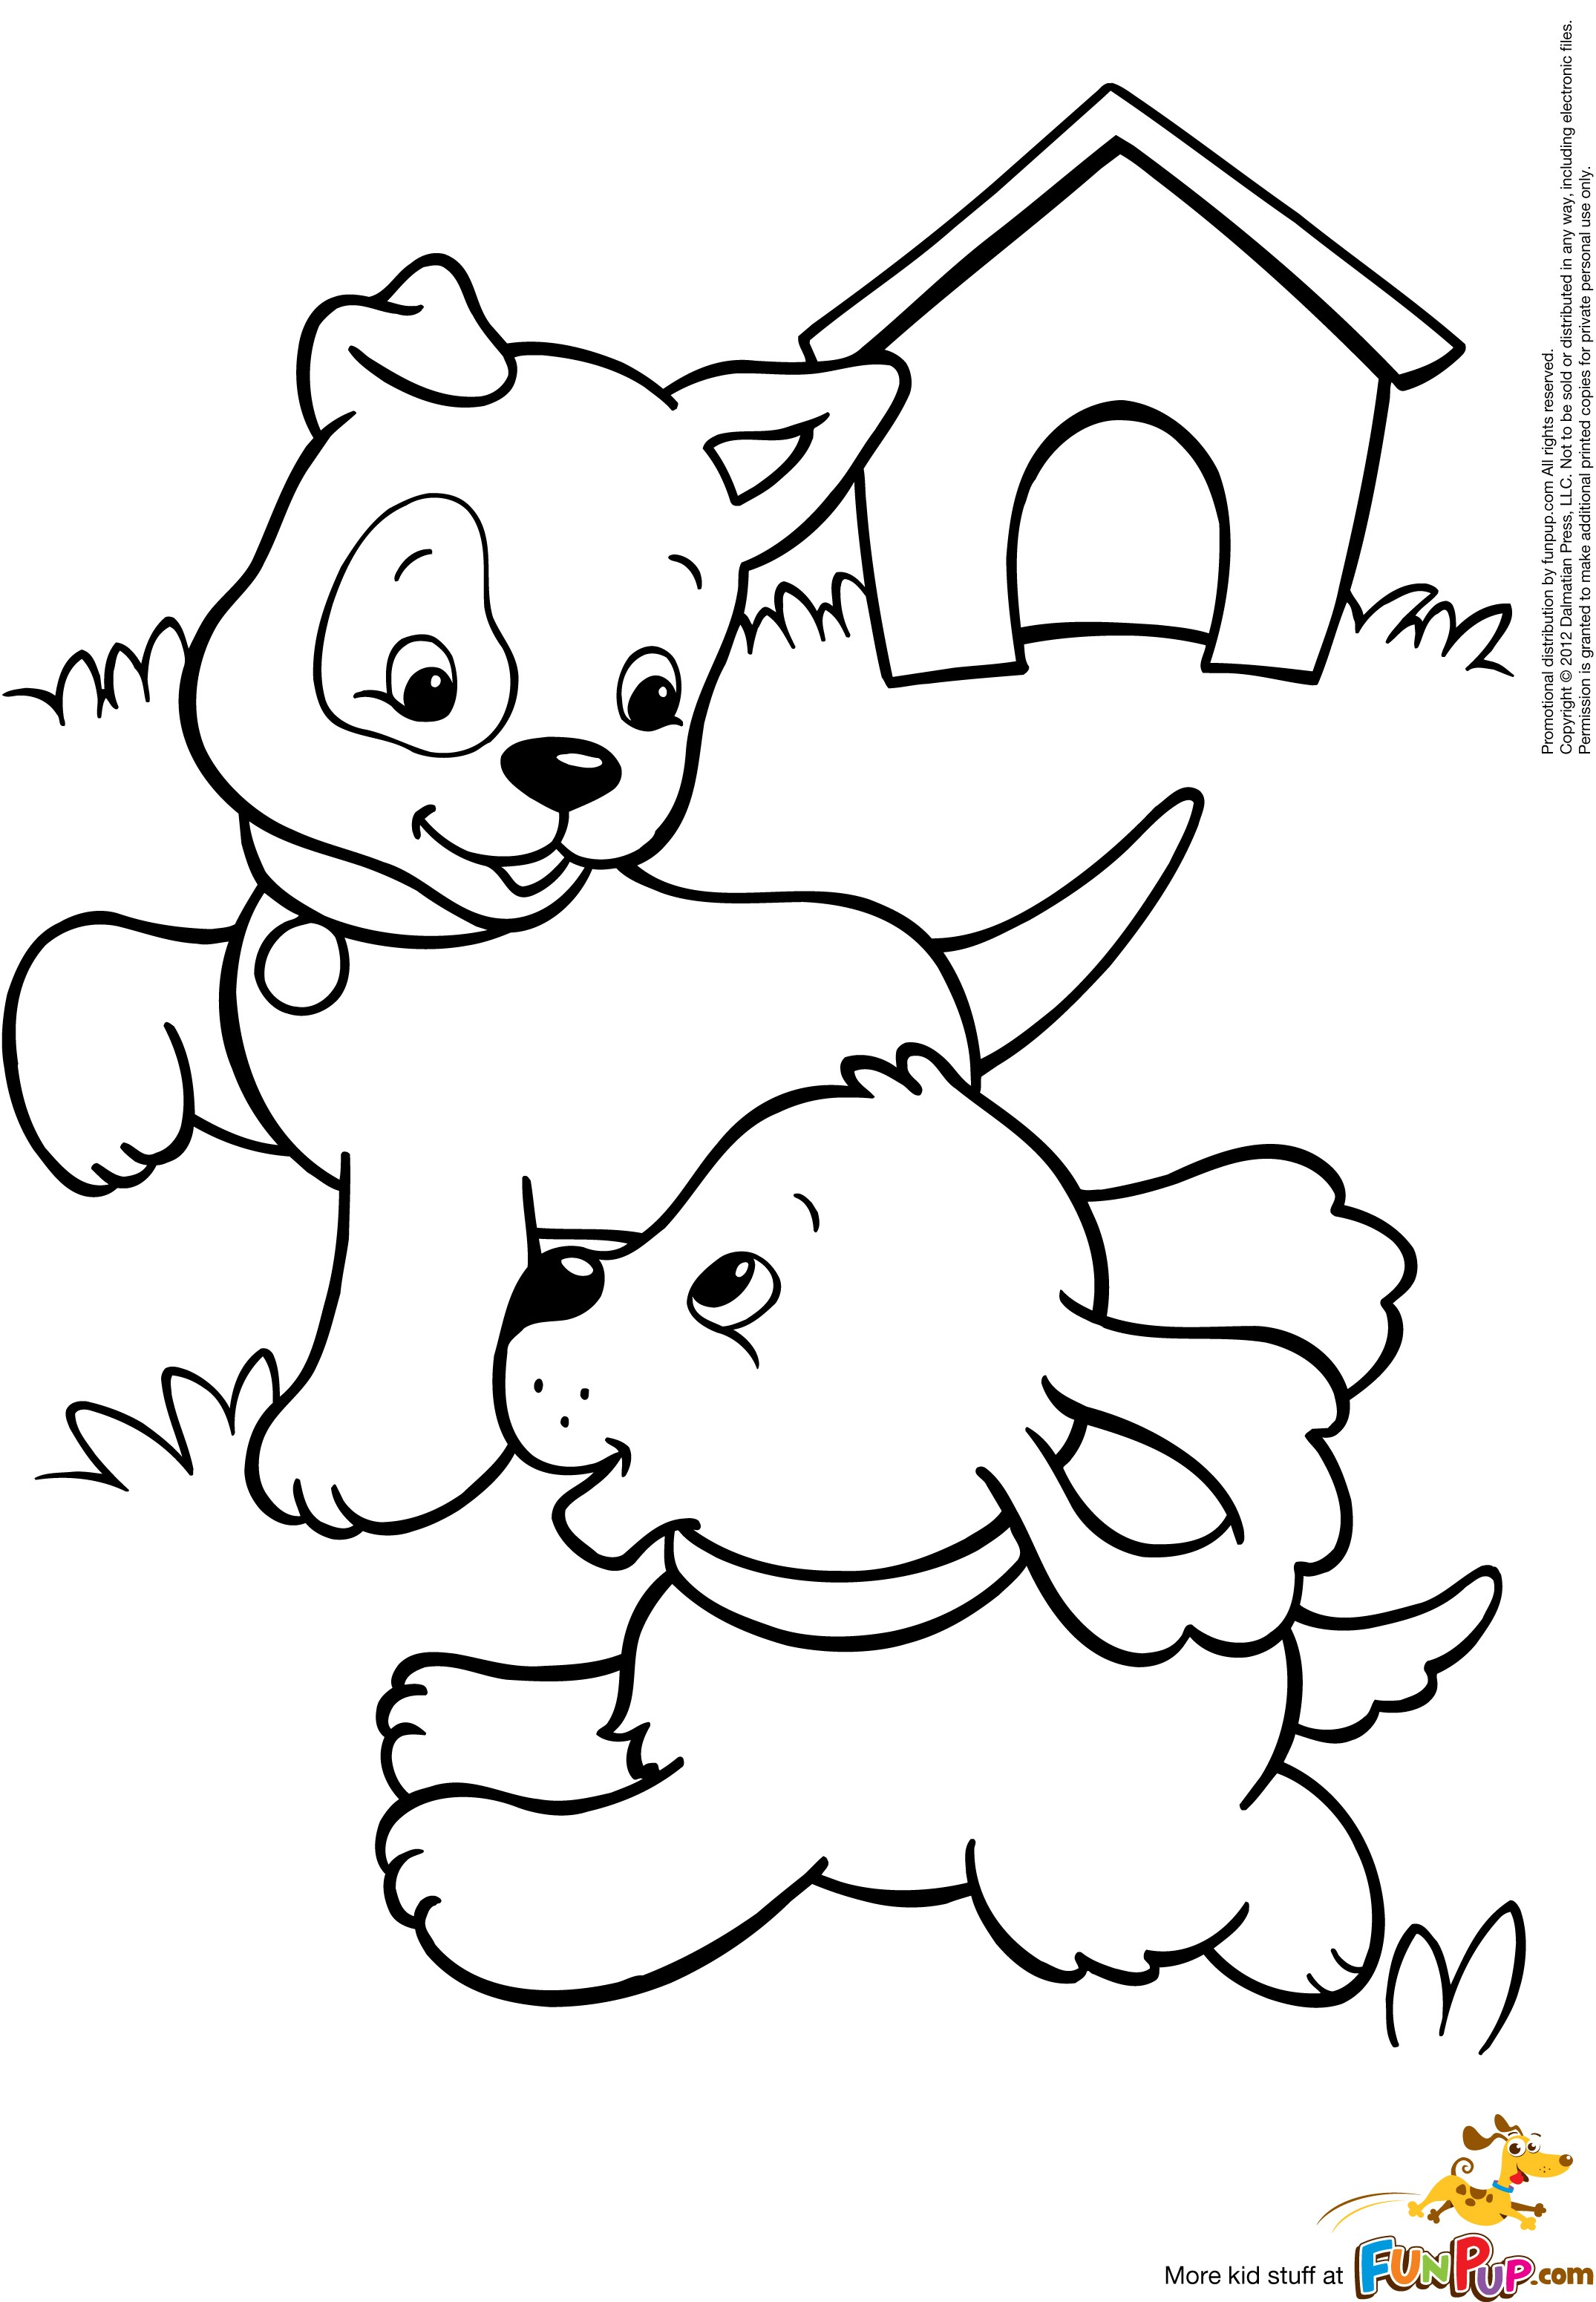 kids coloring puppy puppy coloring pages best coloring pages for kids puppy coloring kids